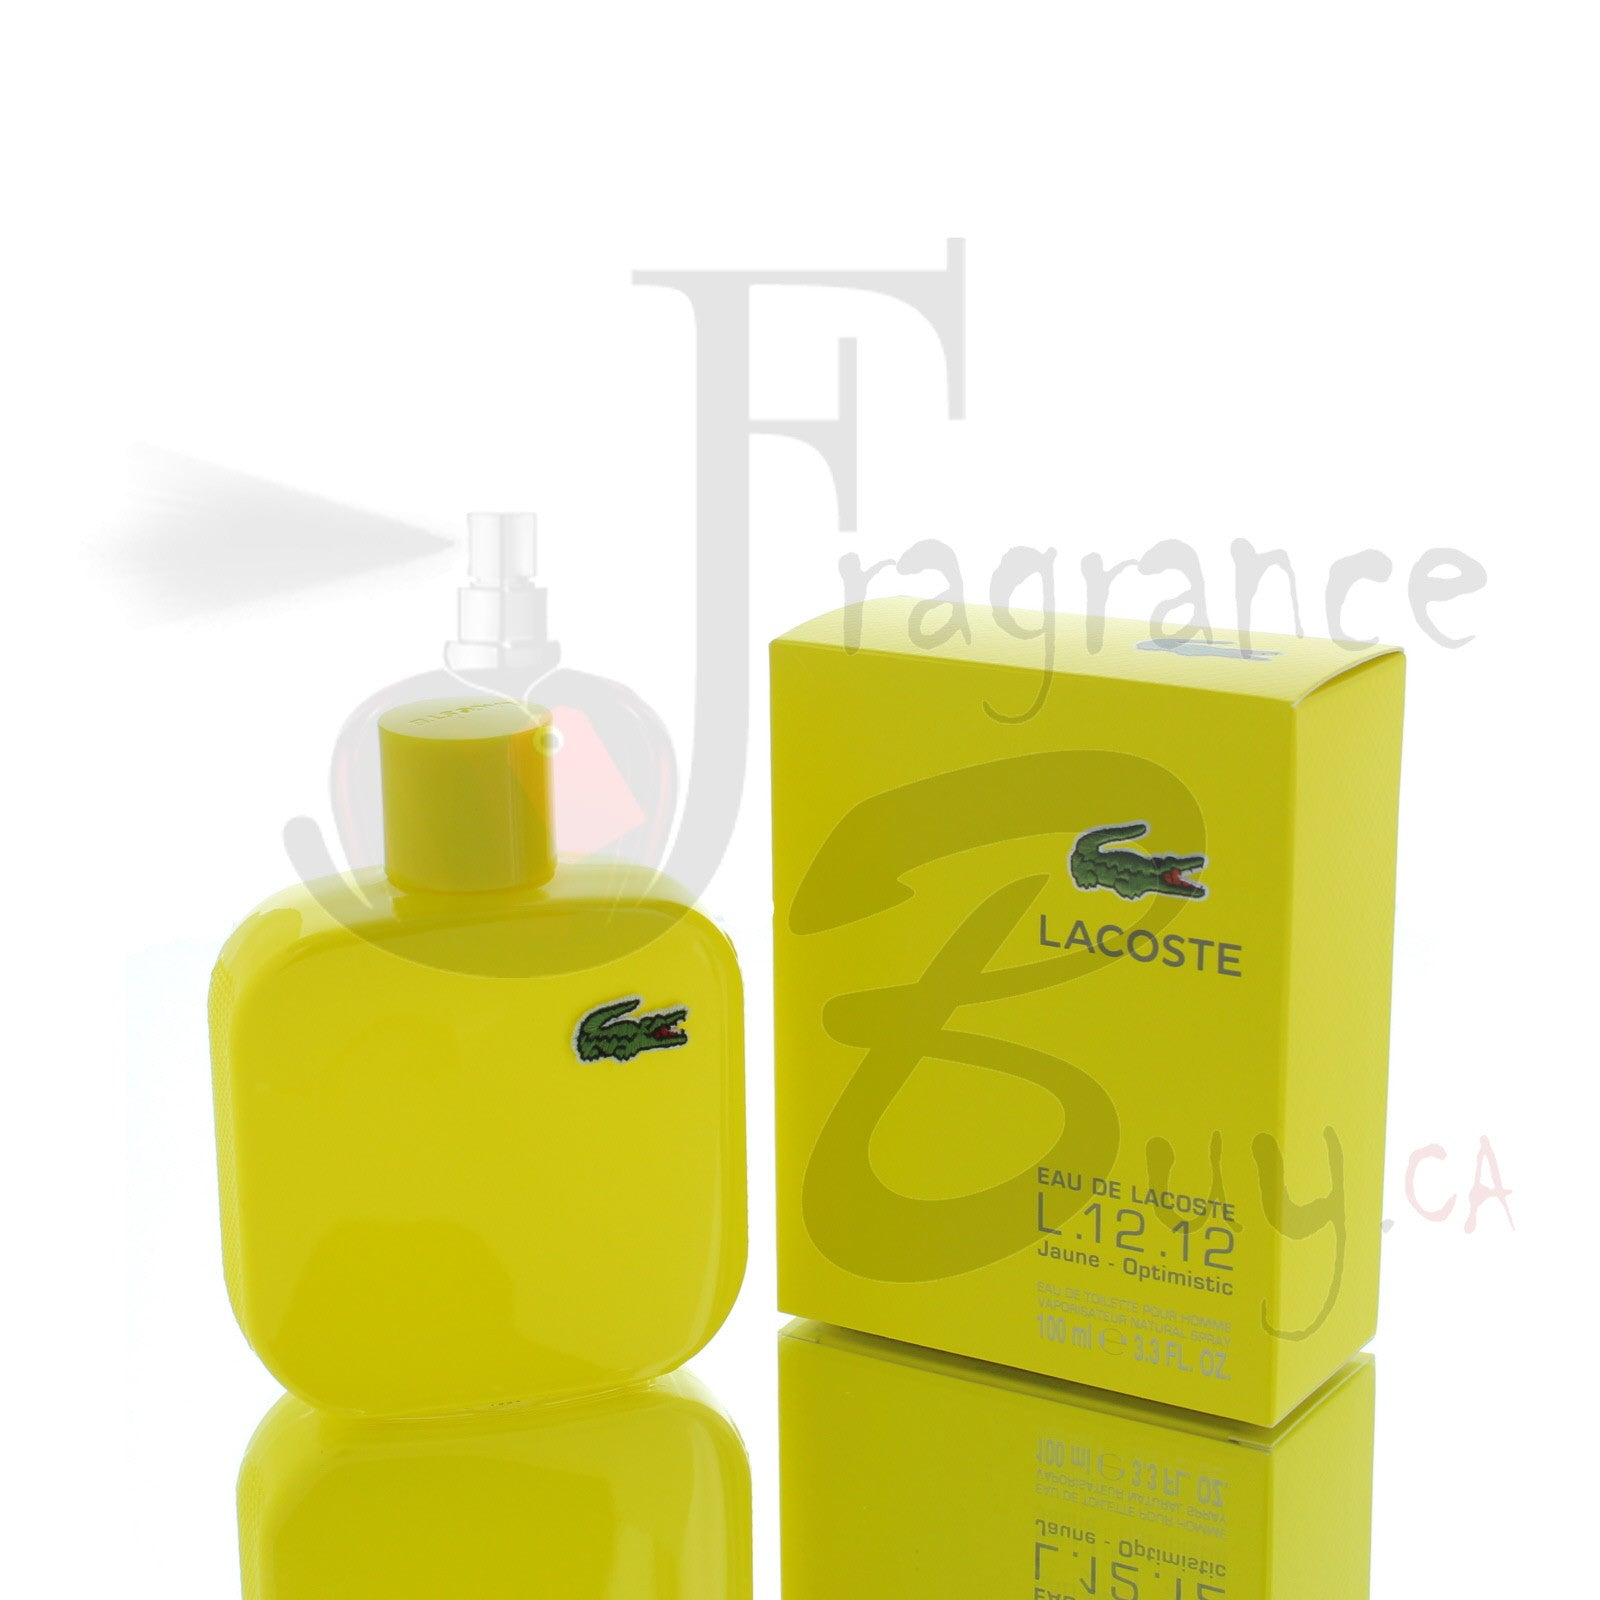 Lacoste Jaune (Yellow) Optimistic For Man